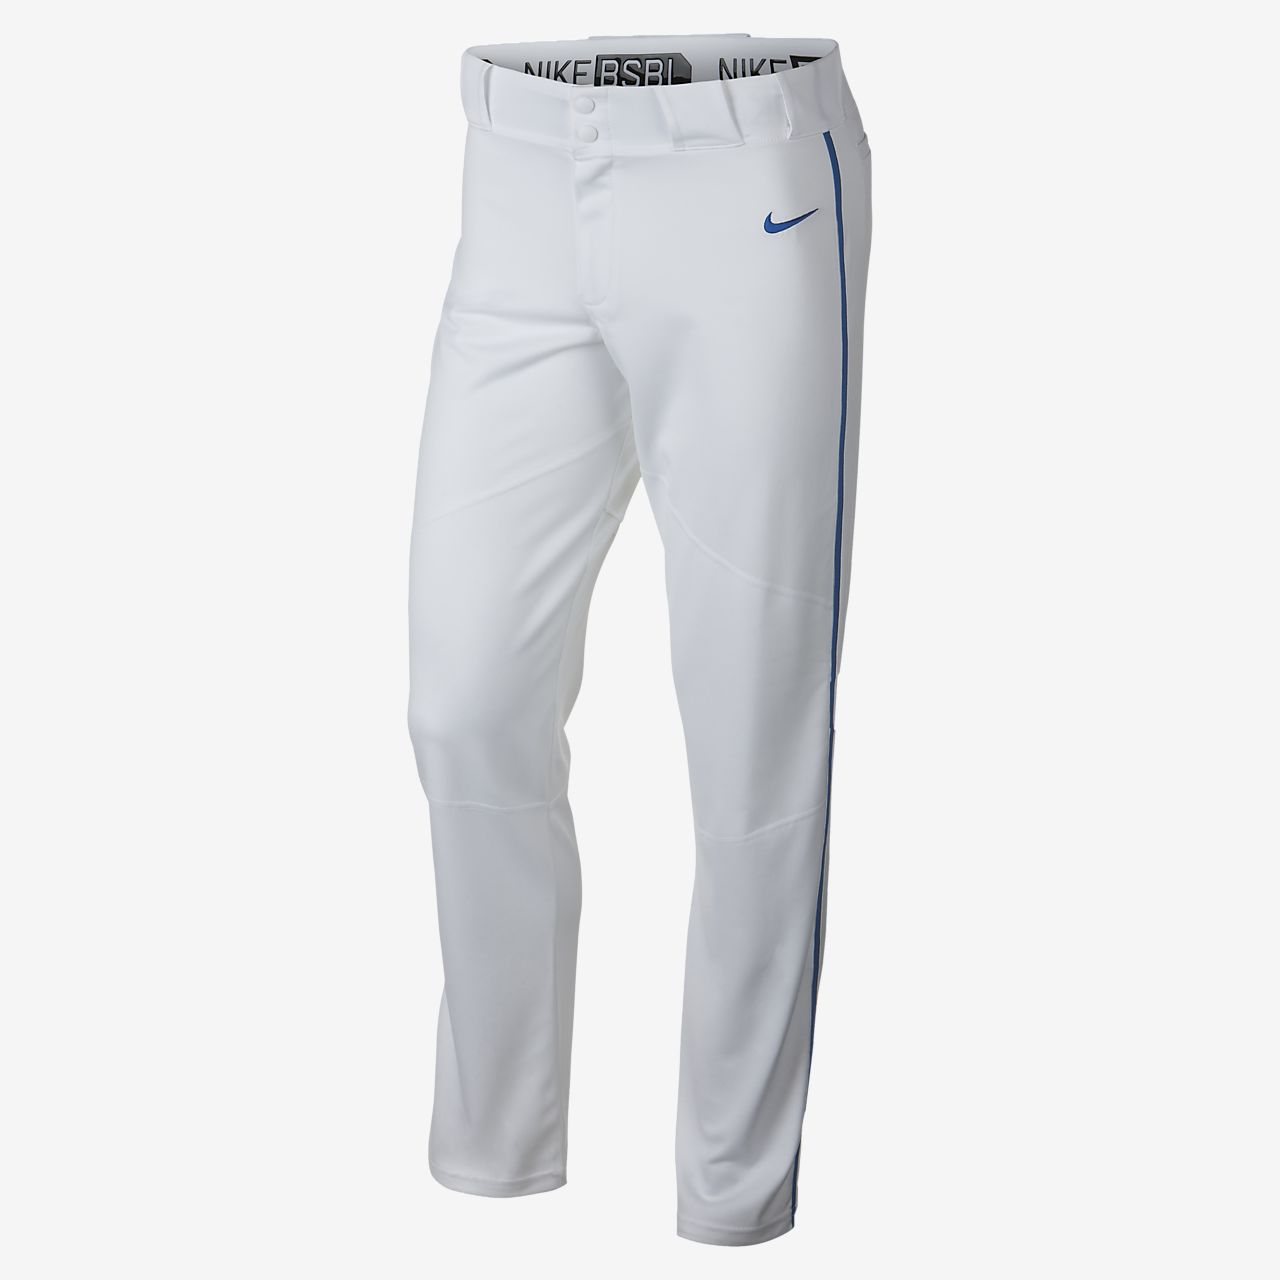 ... Nike Vapor Pro Men's Baseball Pants